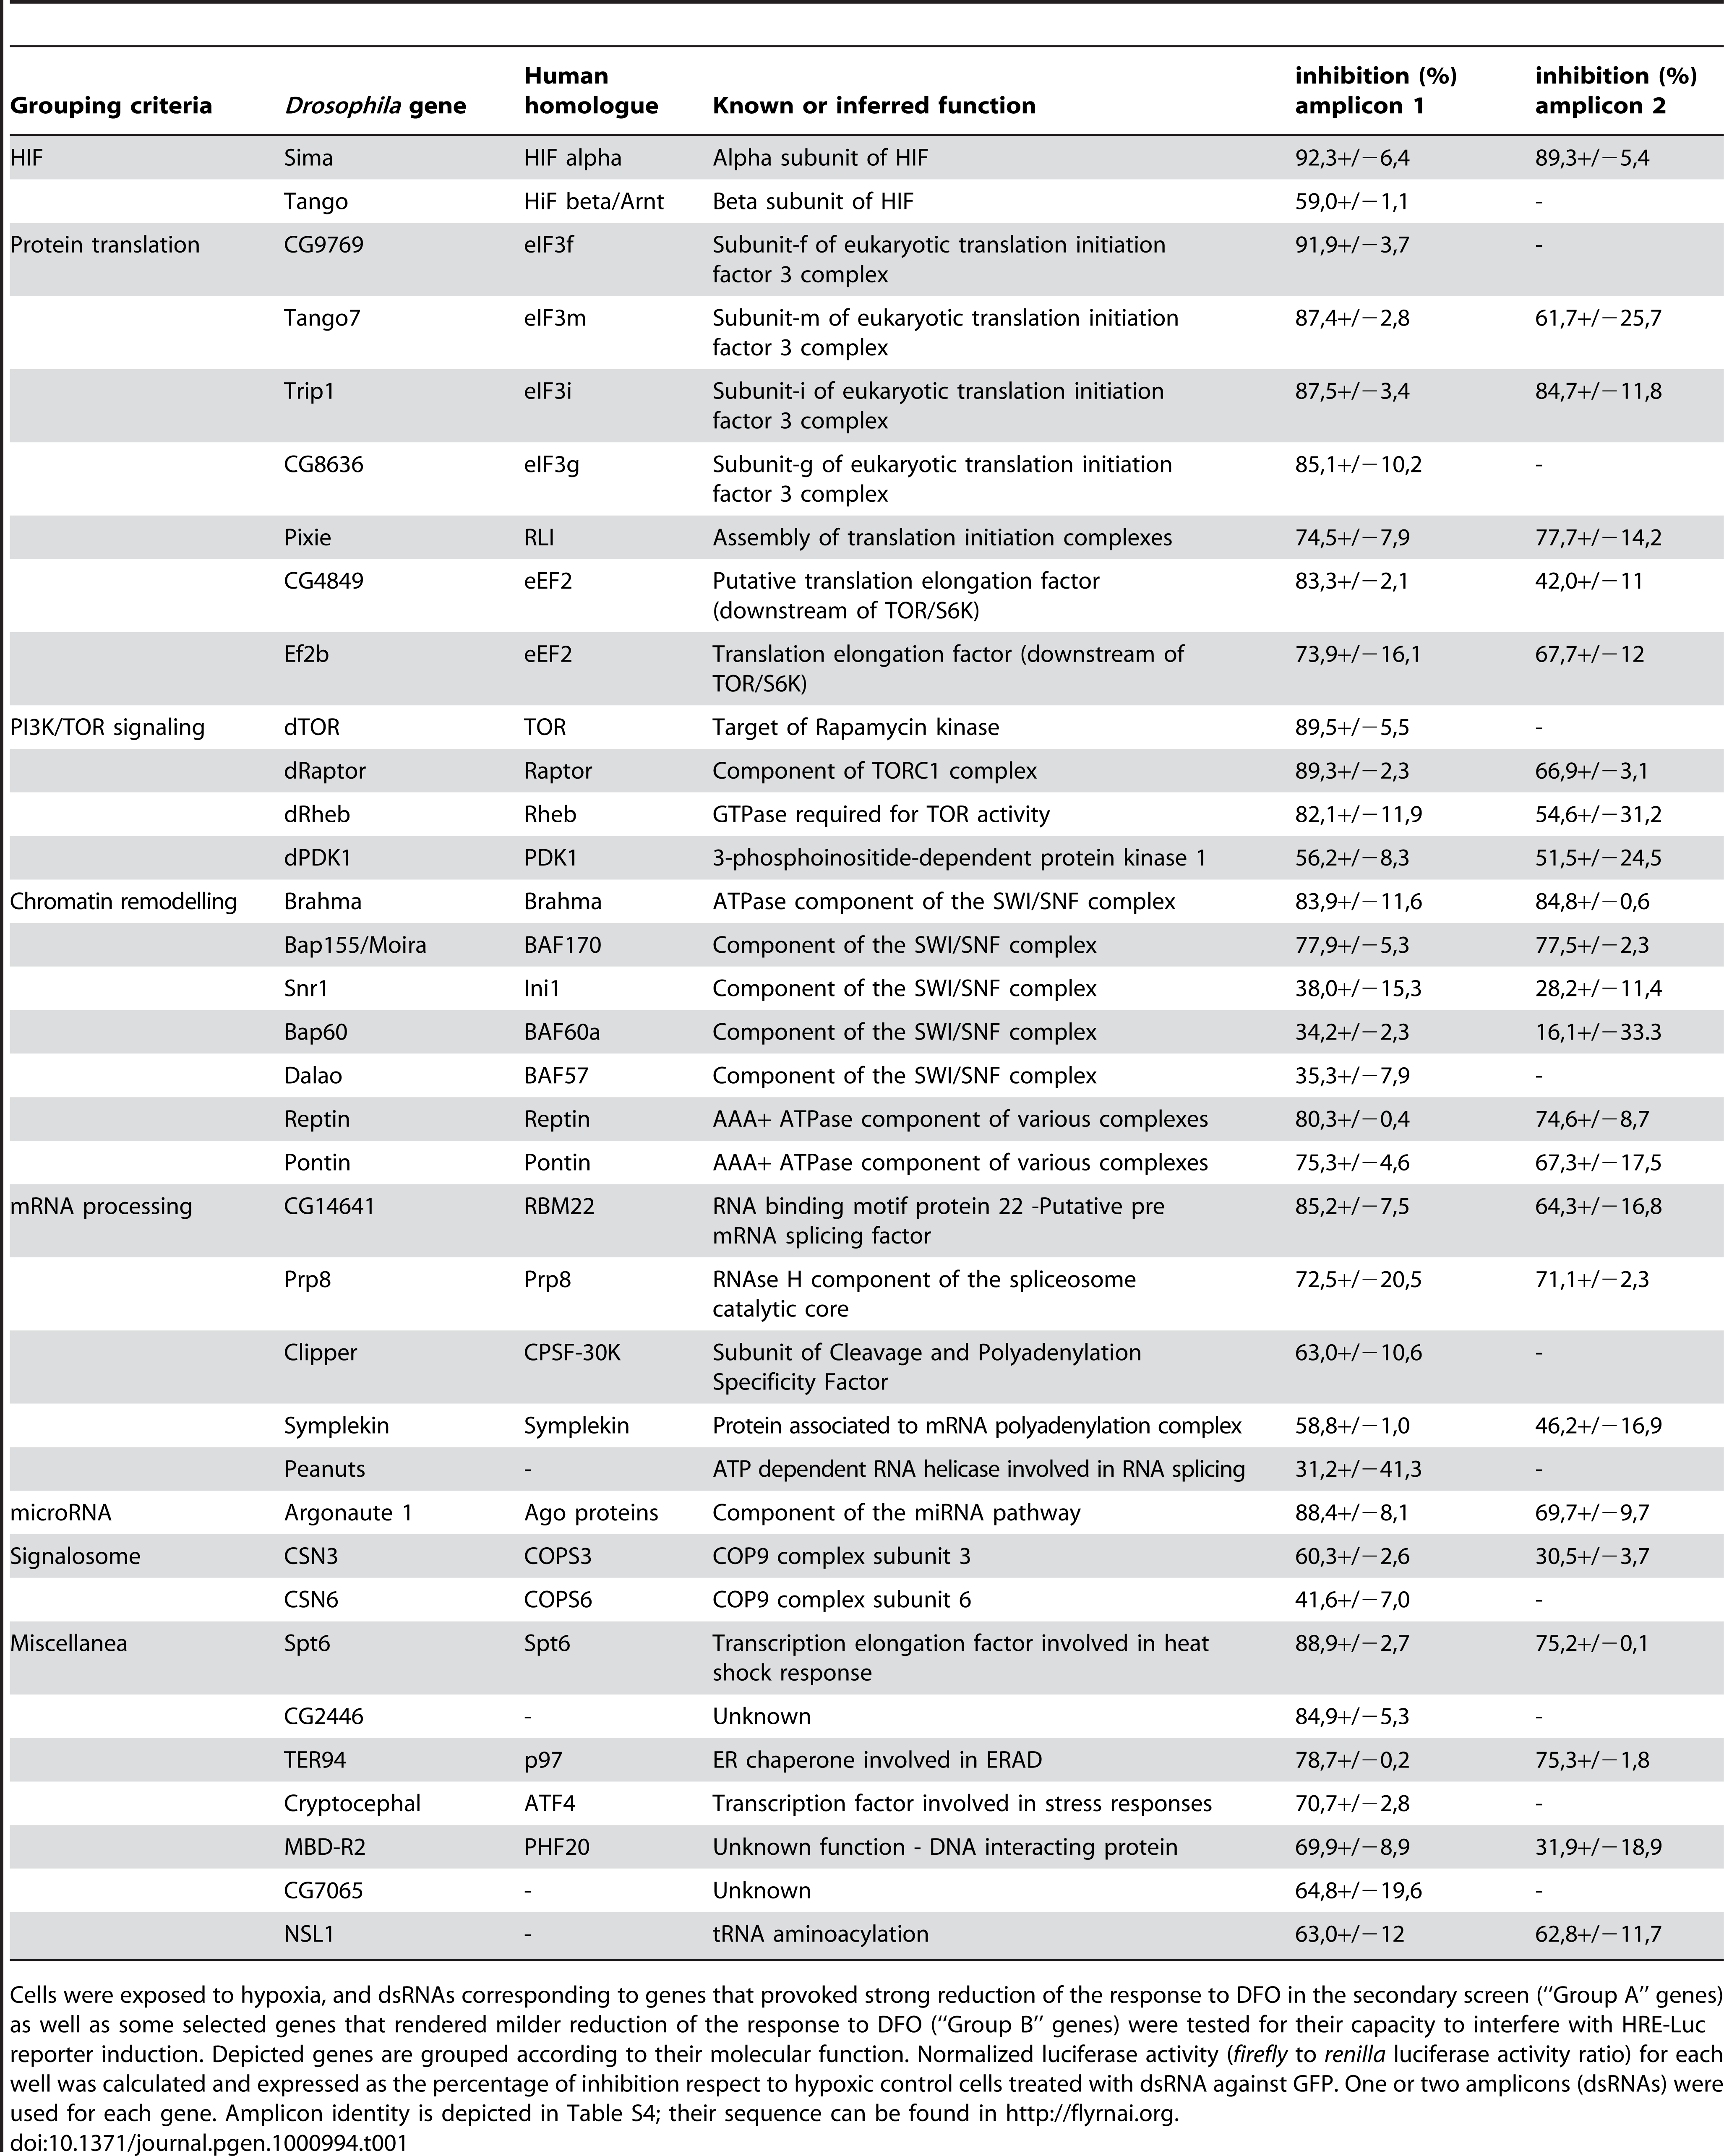 List of genes that scored as positives at the tertiary screen.